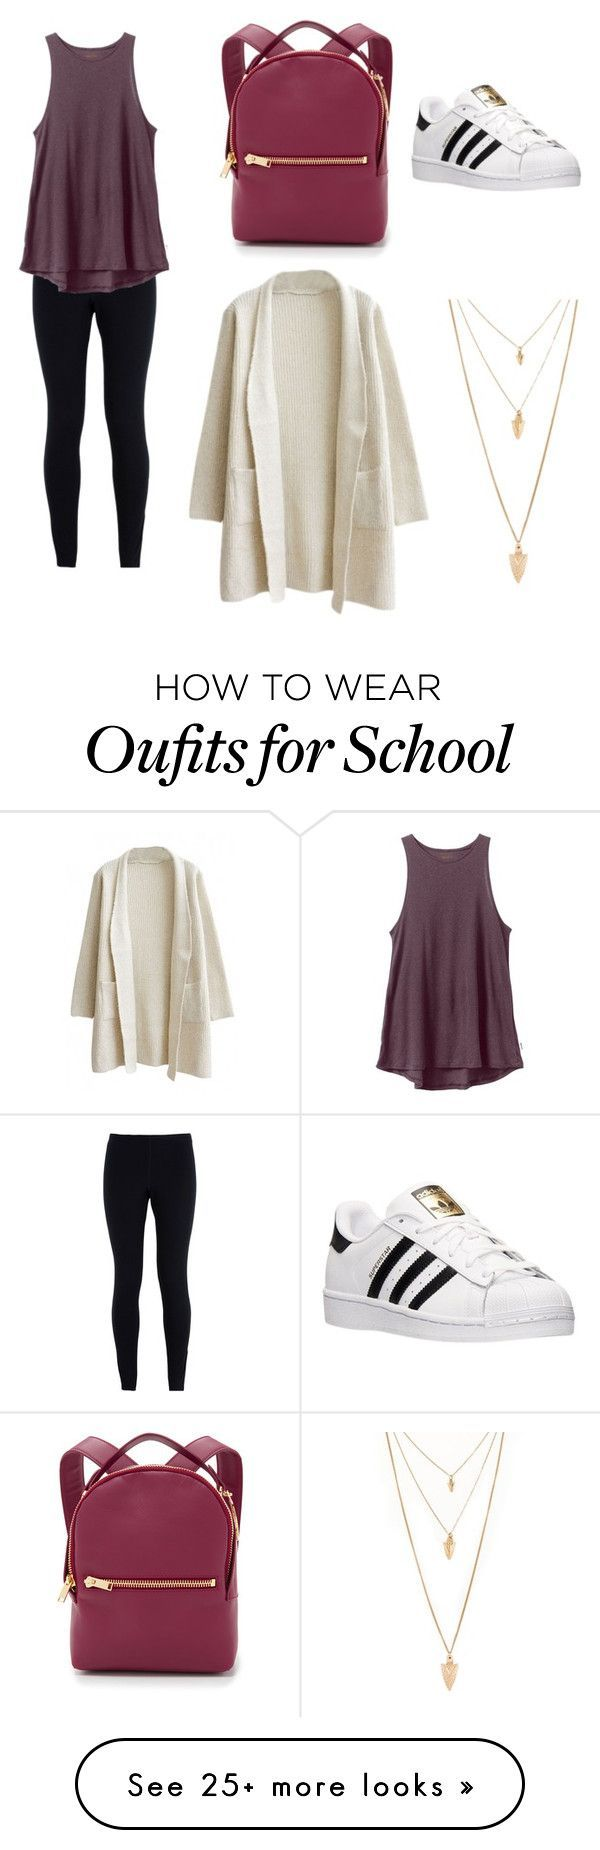 """ School Chic "" by hopecatherineharry on Polyvore featuring NIKE, RVCA, adidas, Sophie Hulme and Forever 21"